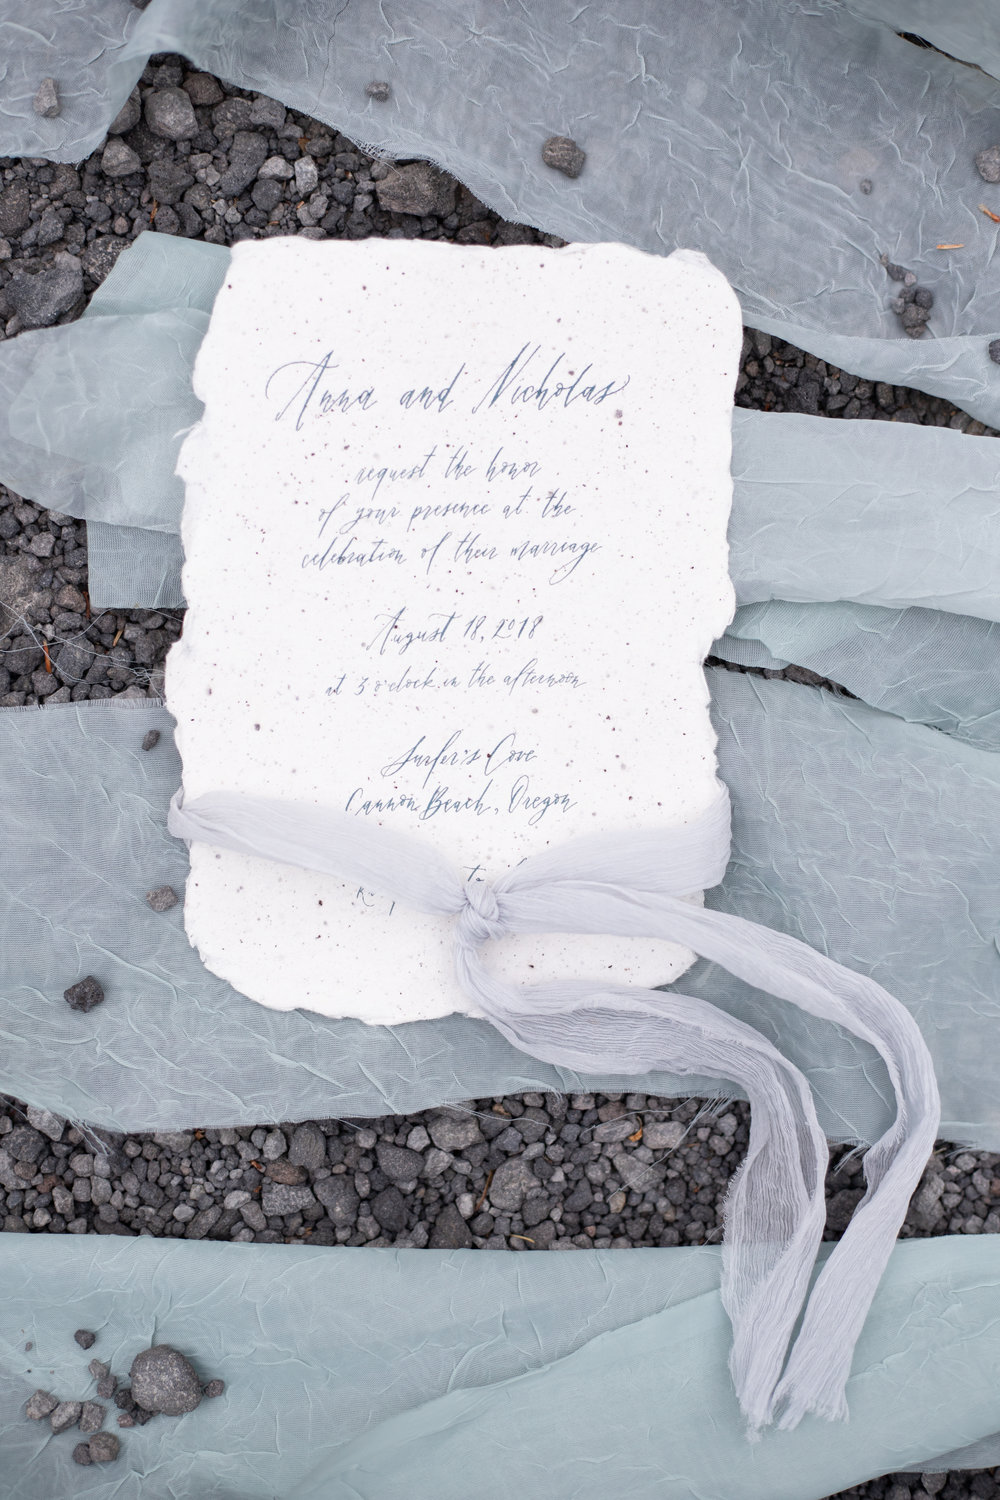 Ethereal fine art calligraphy wedding invitations by Caitlin O'Bryant Design, printed on handmade paper. Photo by Ashley Marie Photography